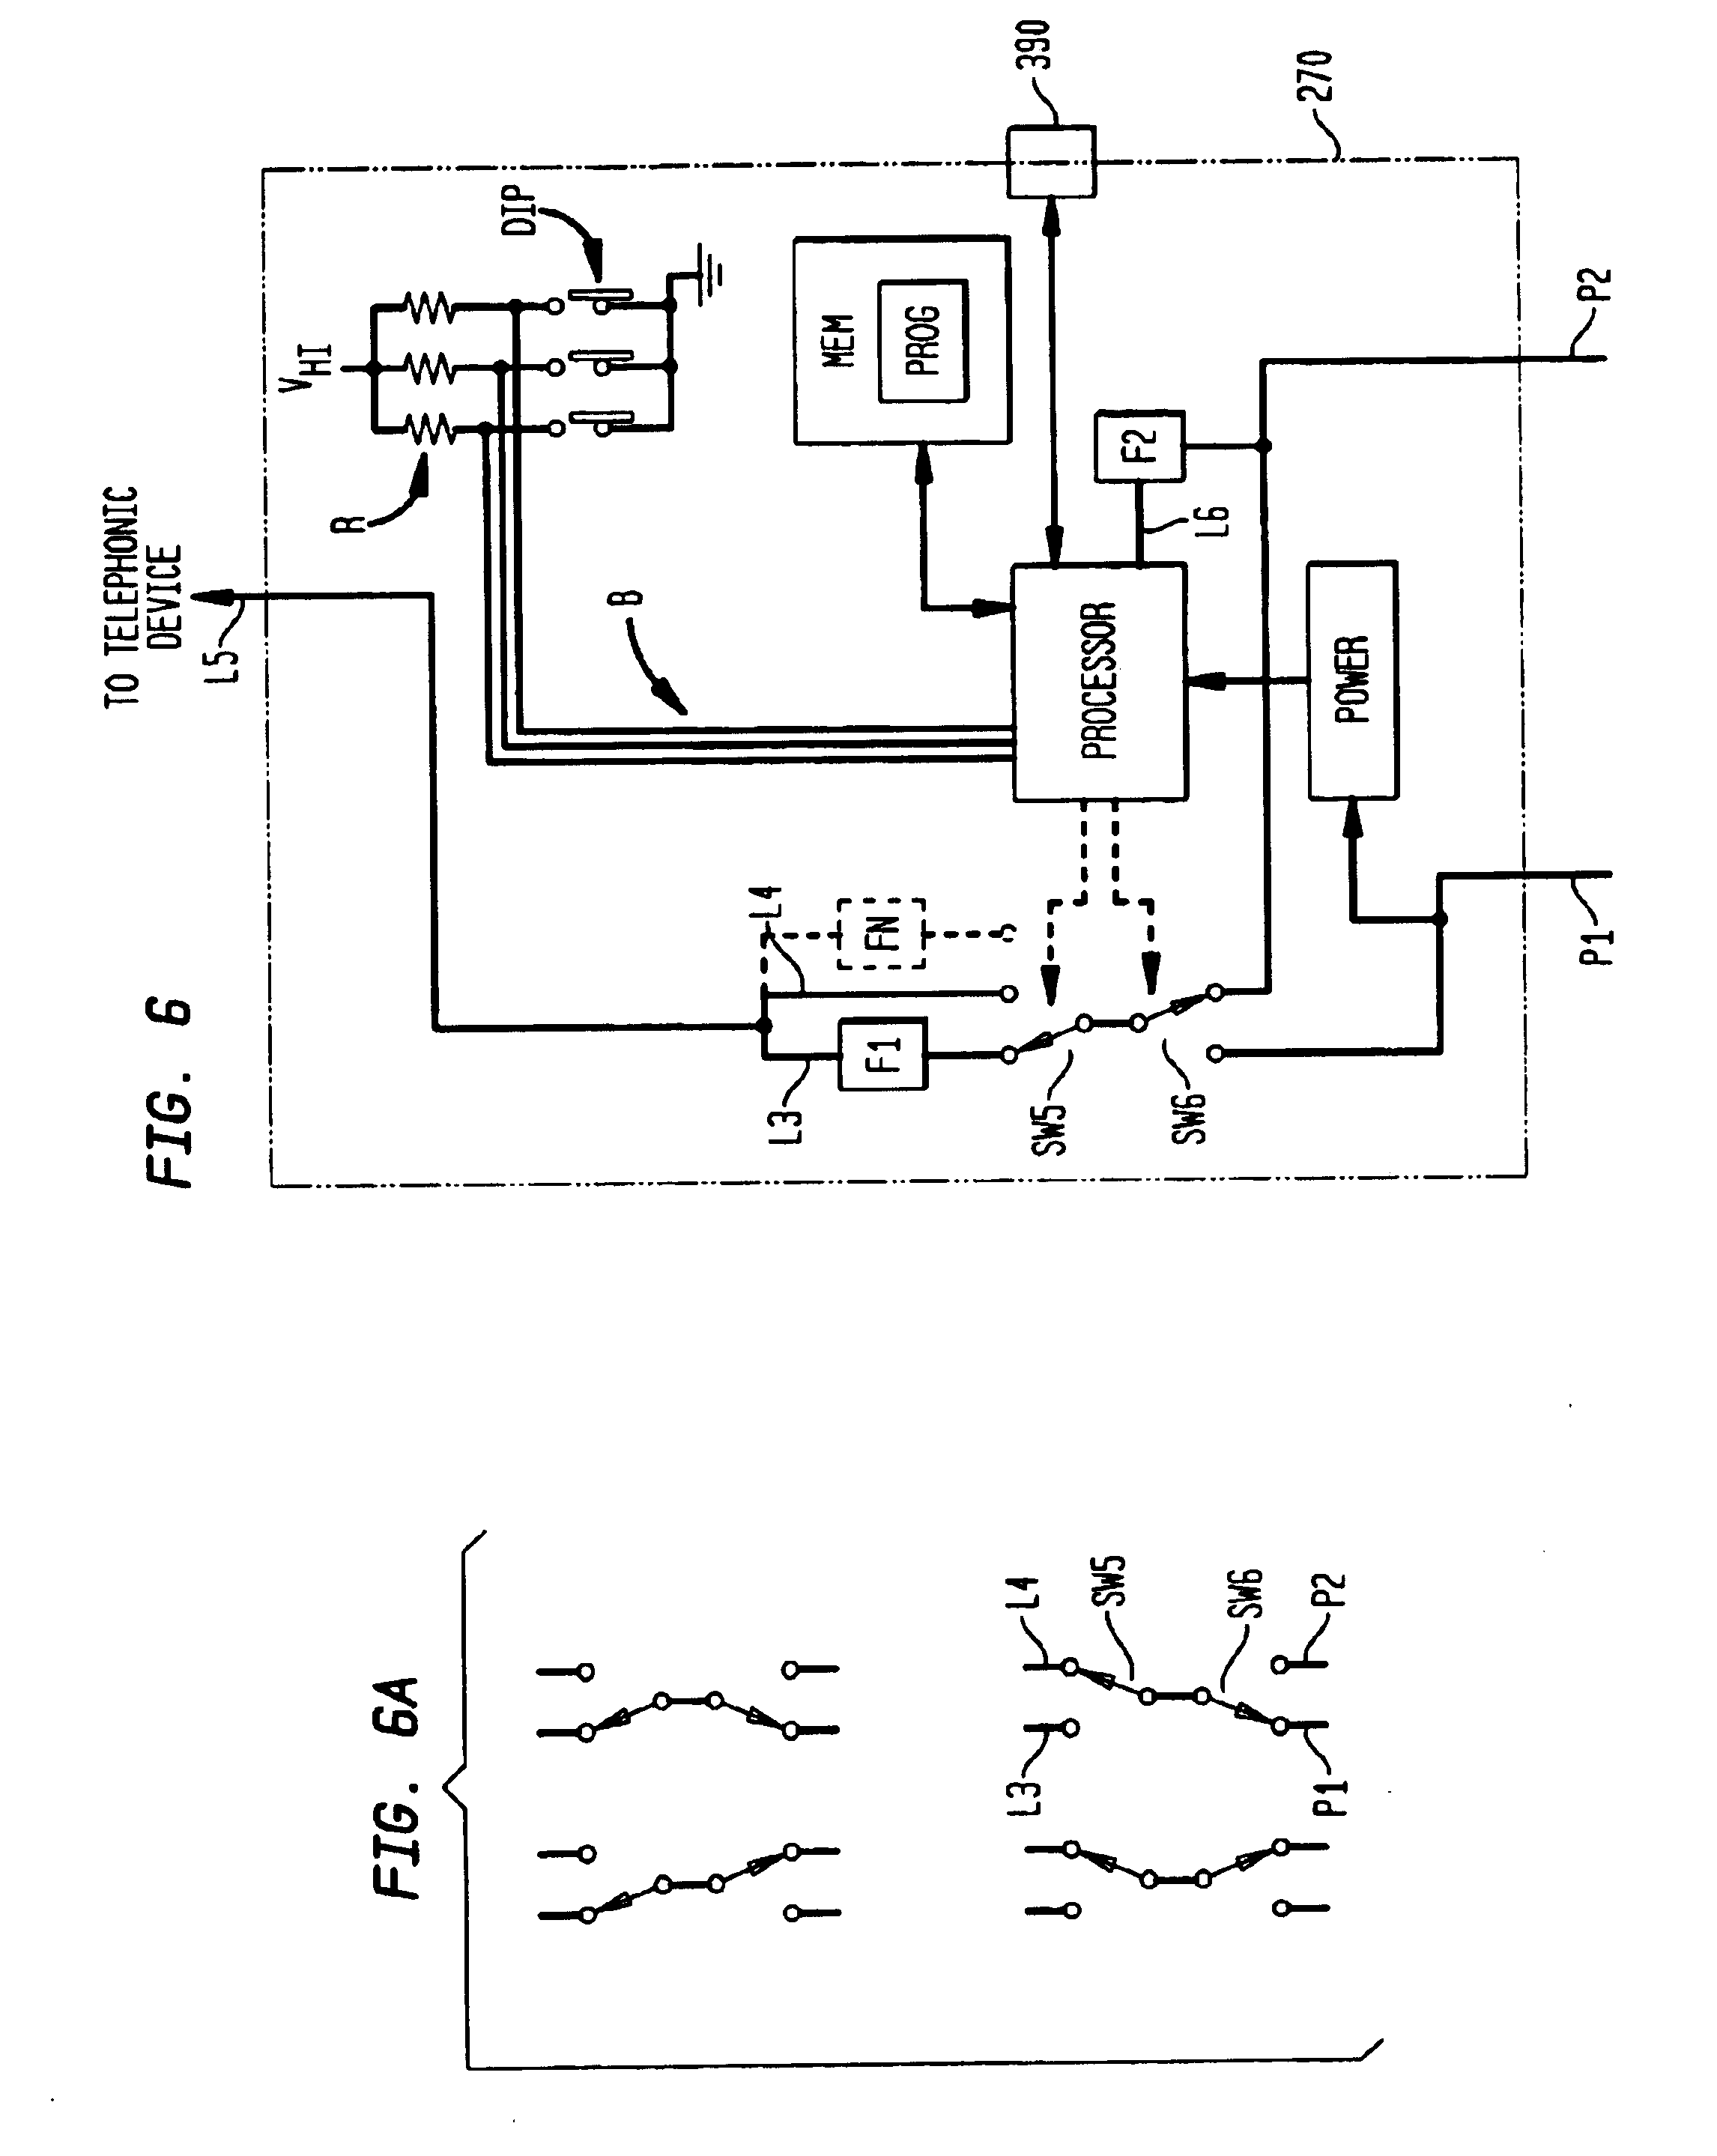 patent us6744786 method and apparatus for using telephone house wiring for voice data network